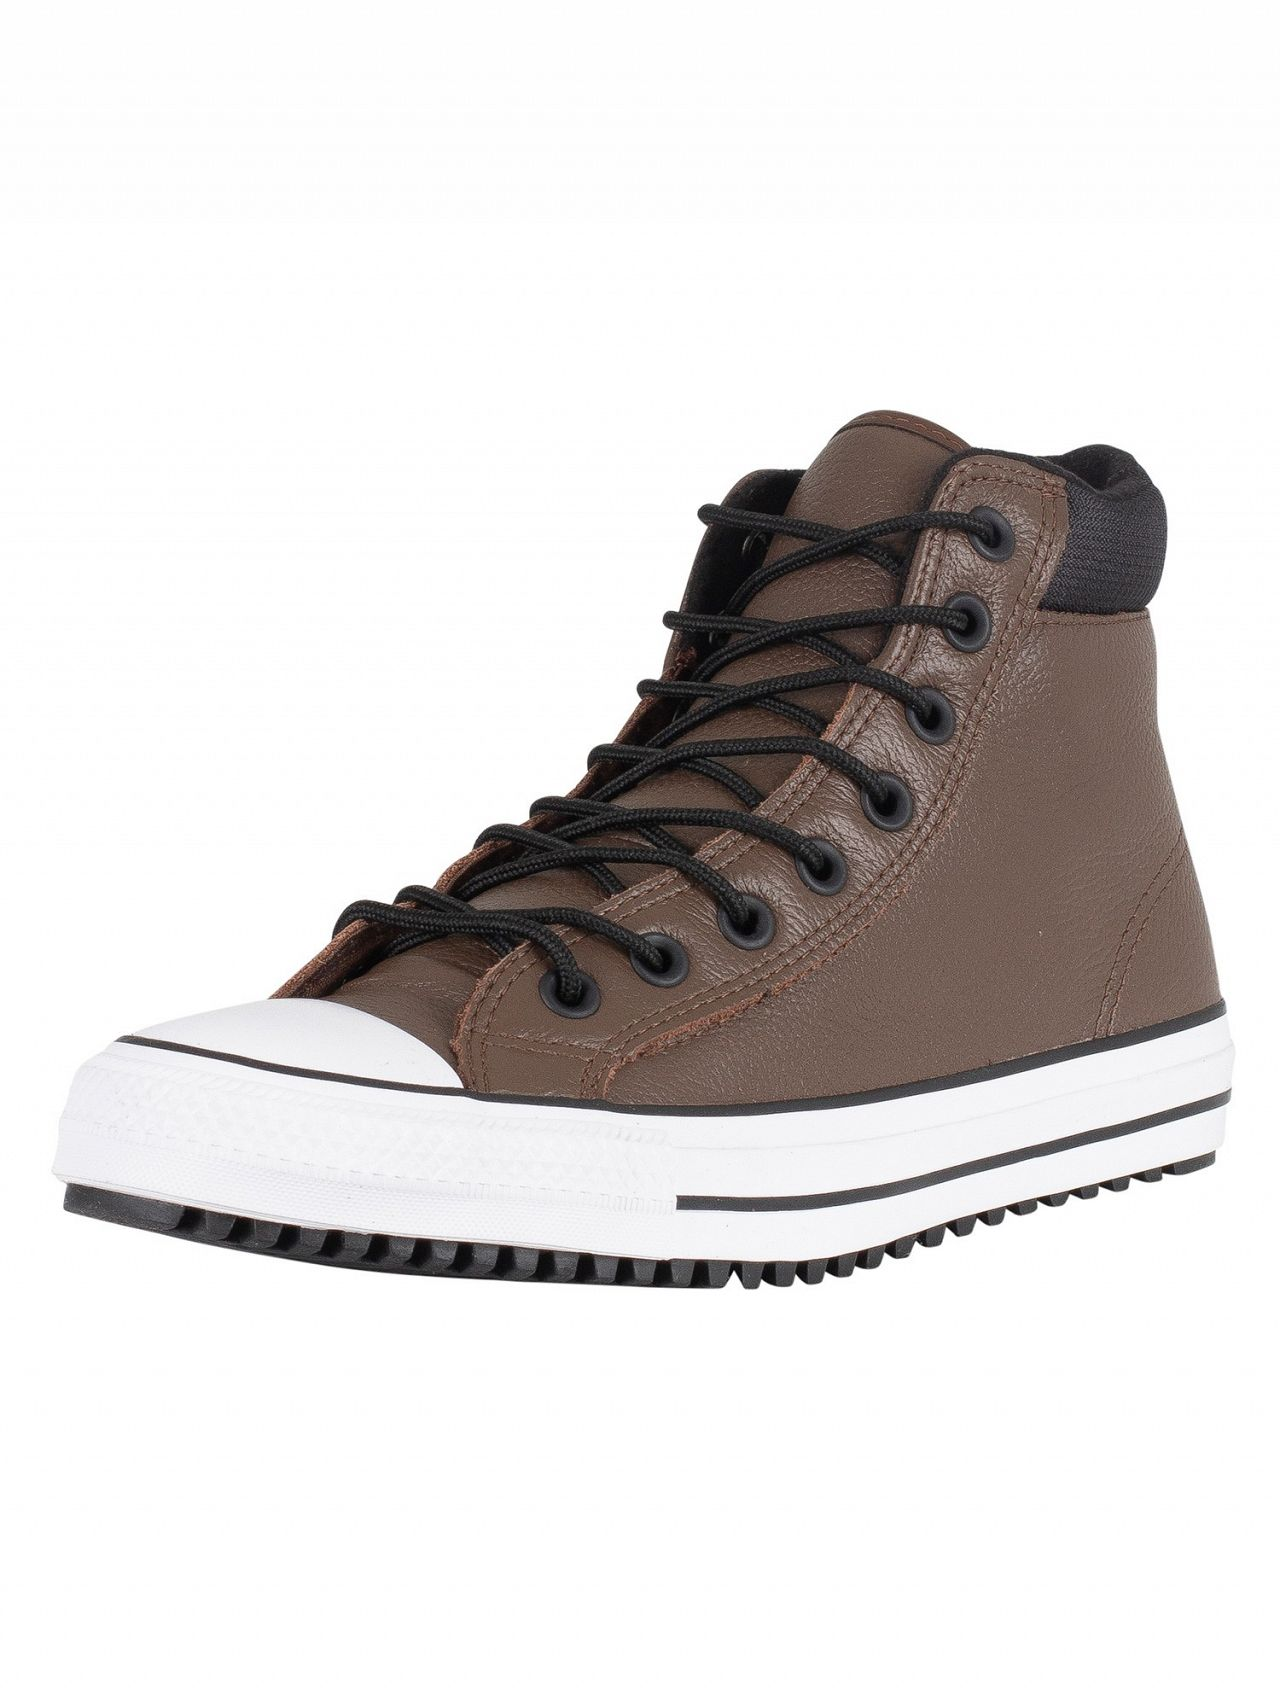 ea032dc0a63fd4 Converse Chocolate Black White CT All Star Hi PC Leather Boots ...